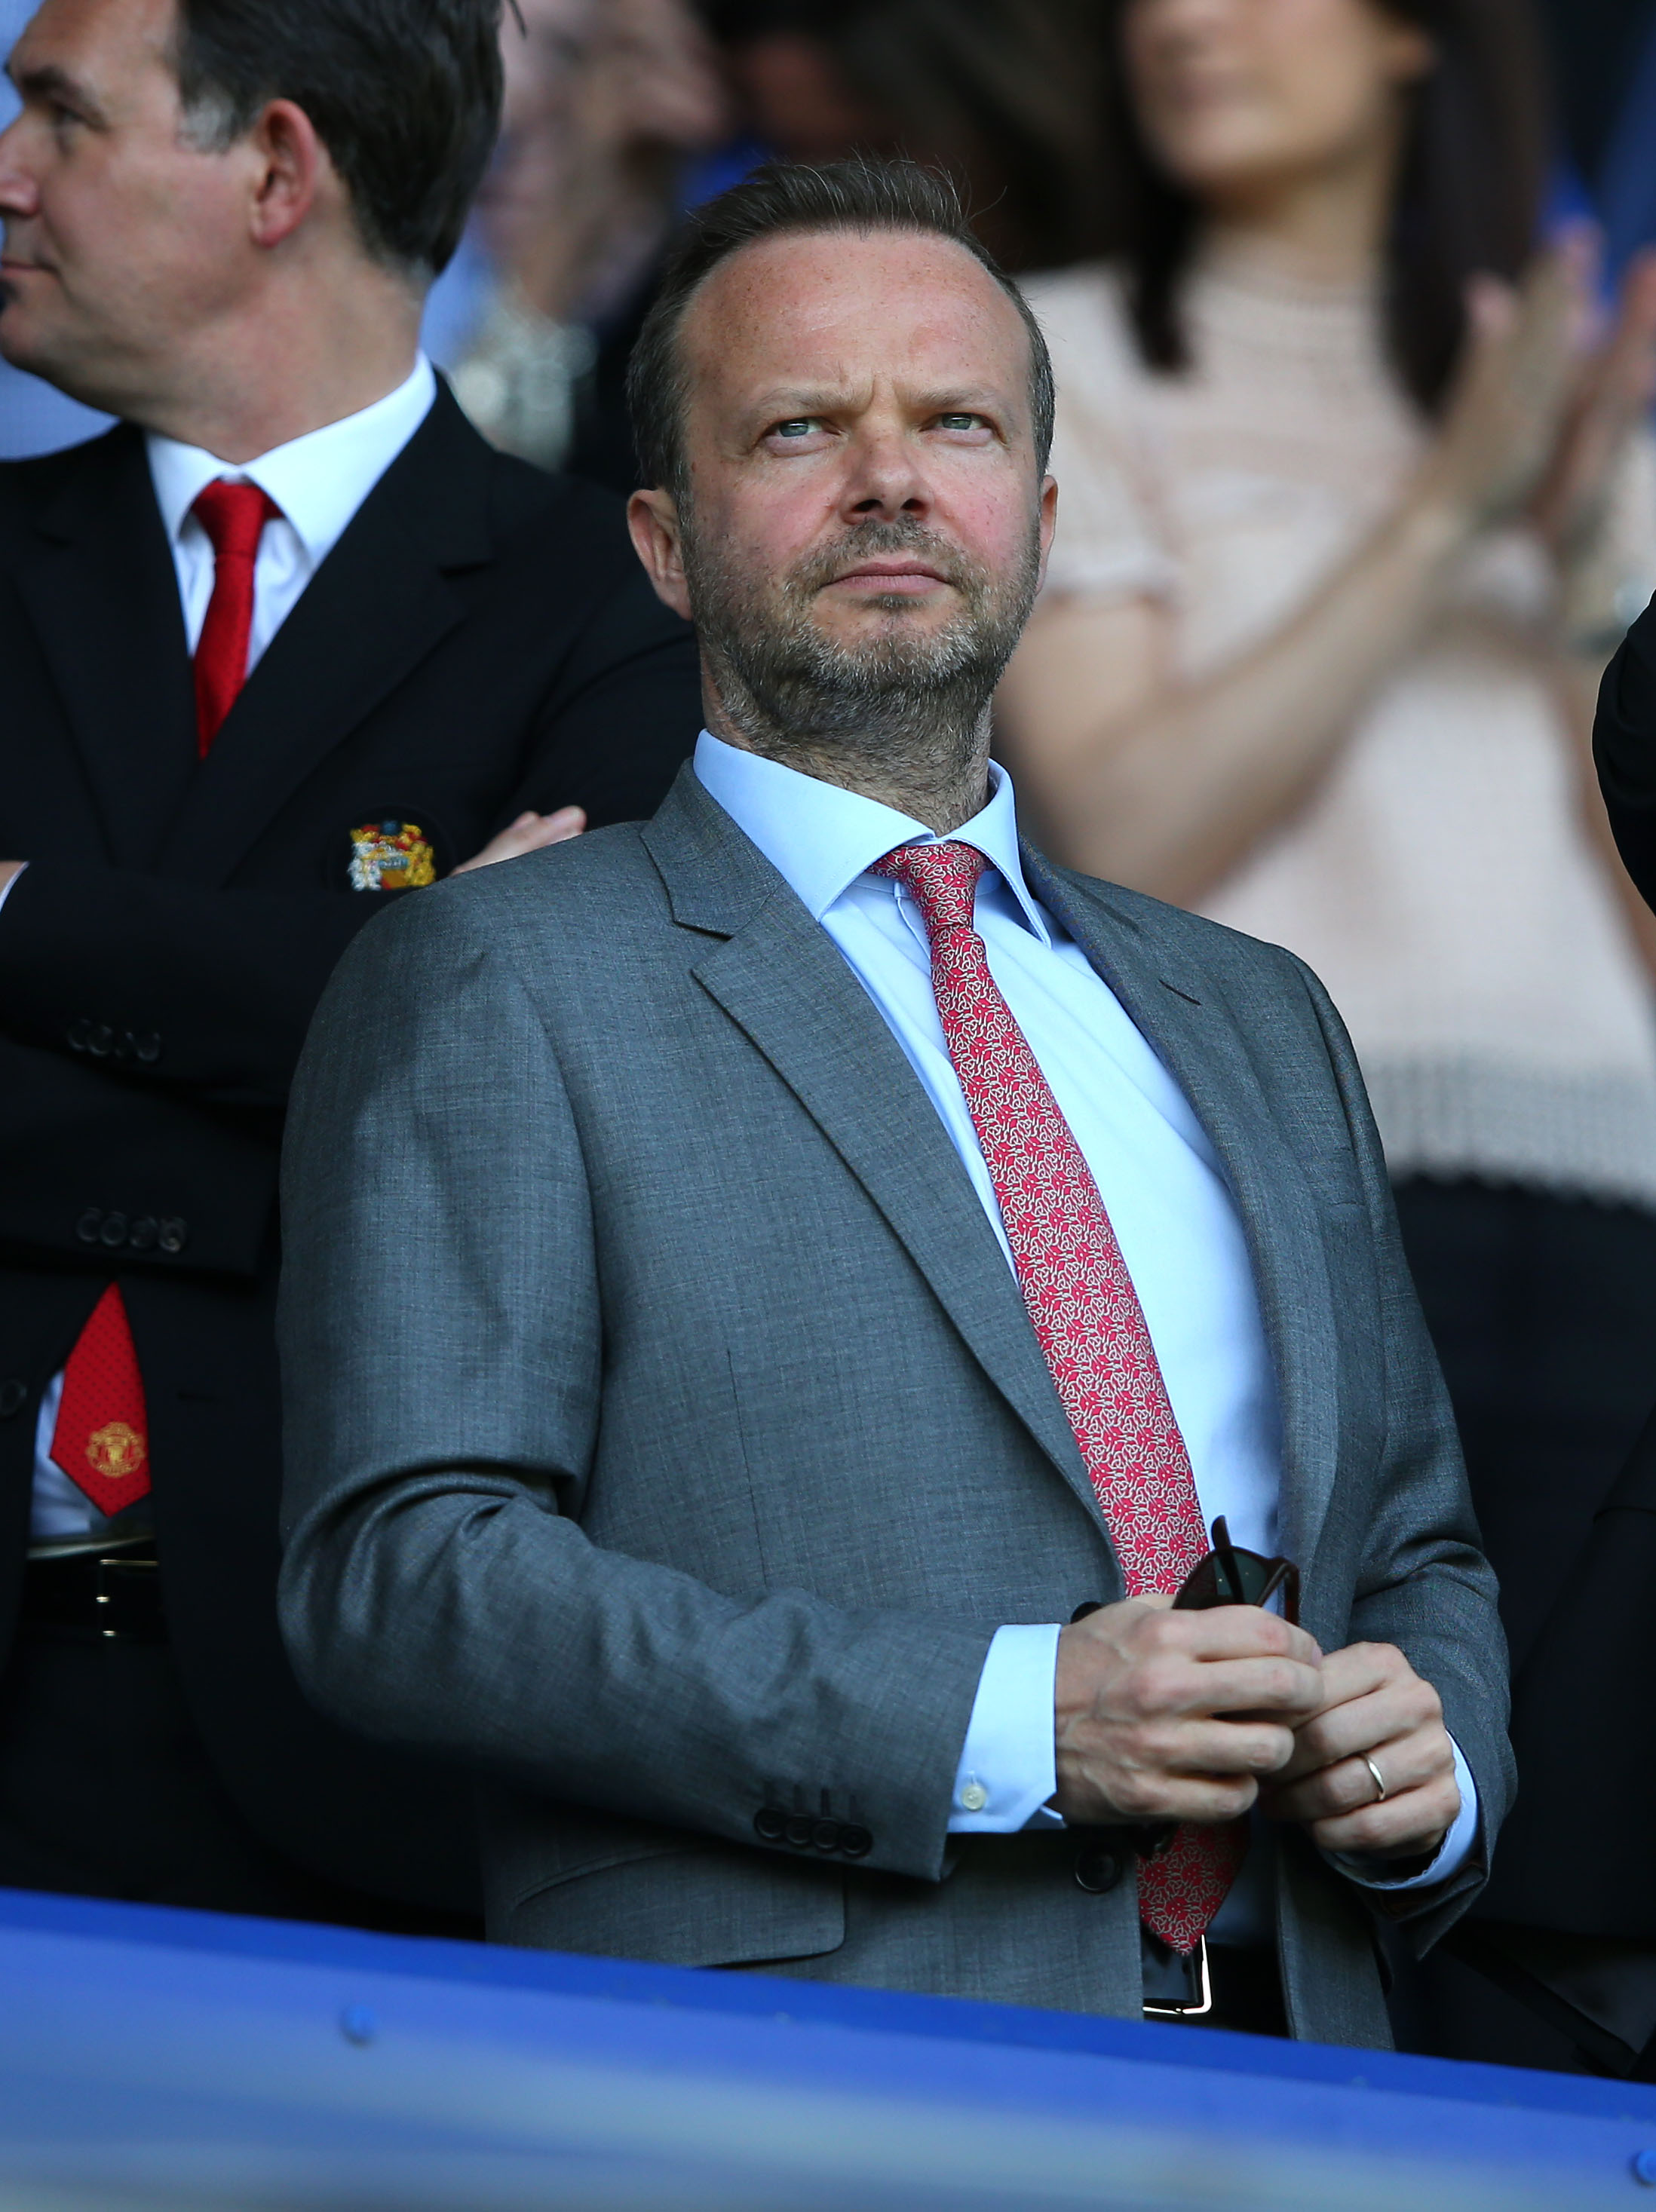 Manchester United fans must act to force out Ed Woodward